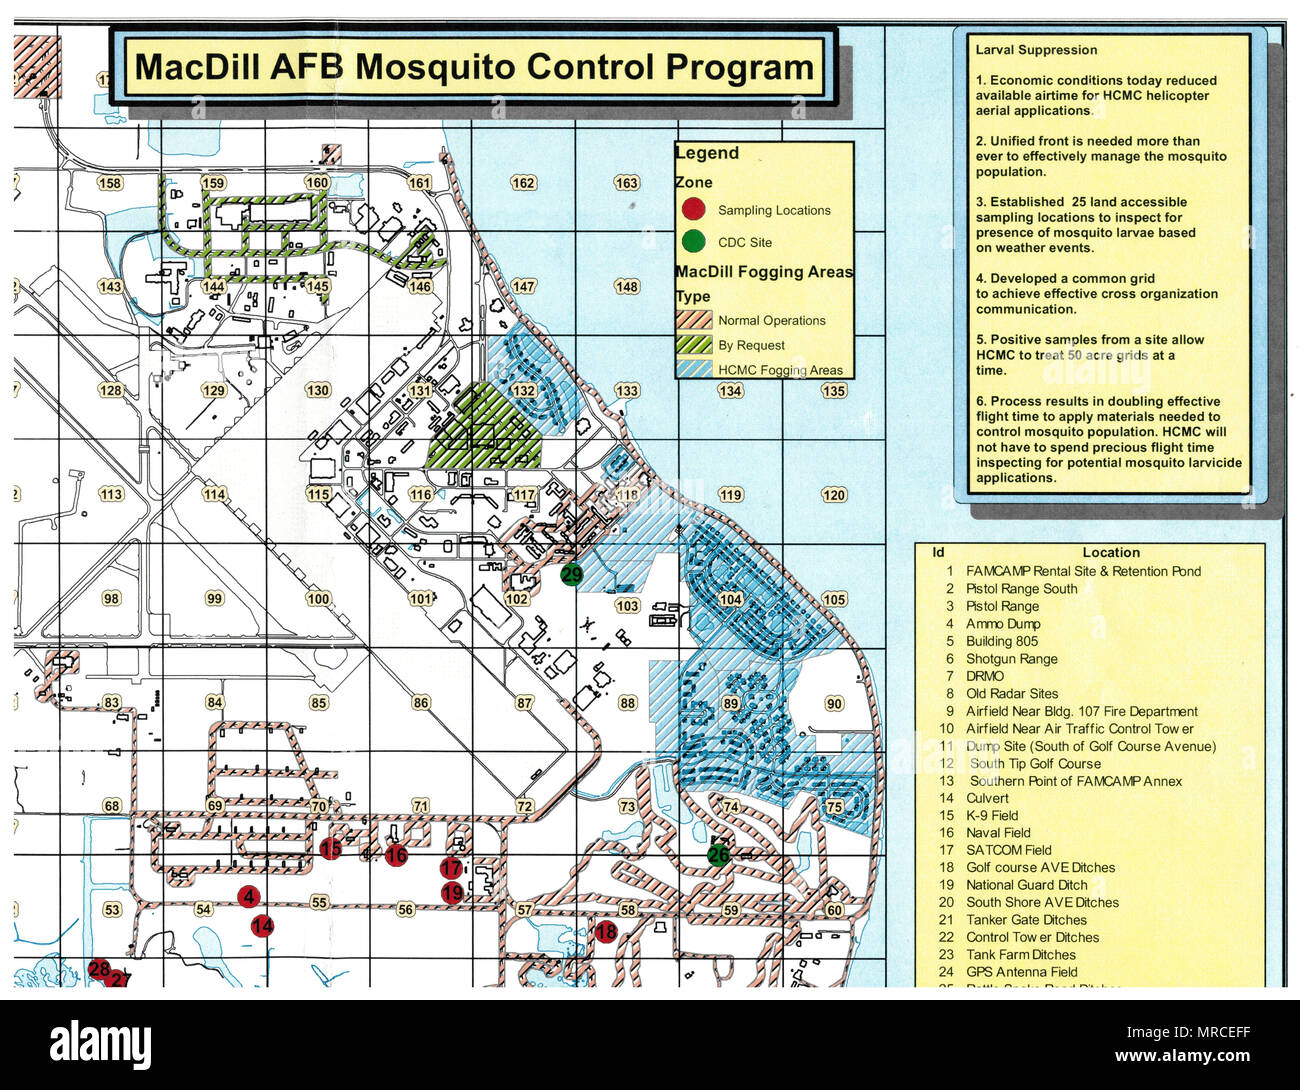 Team MacDill's Pest Management team's mosquito control